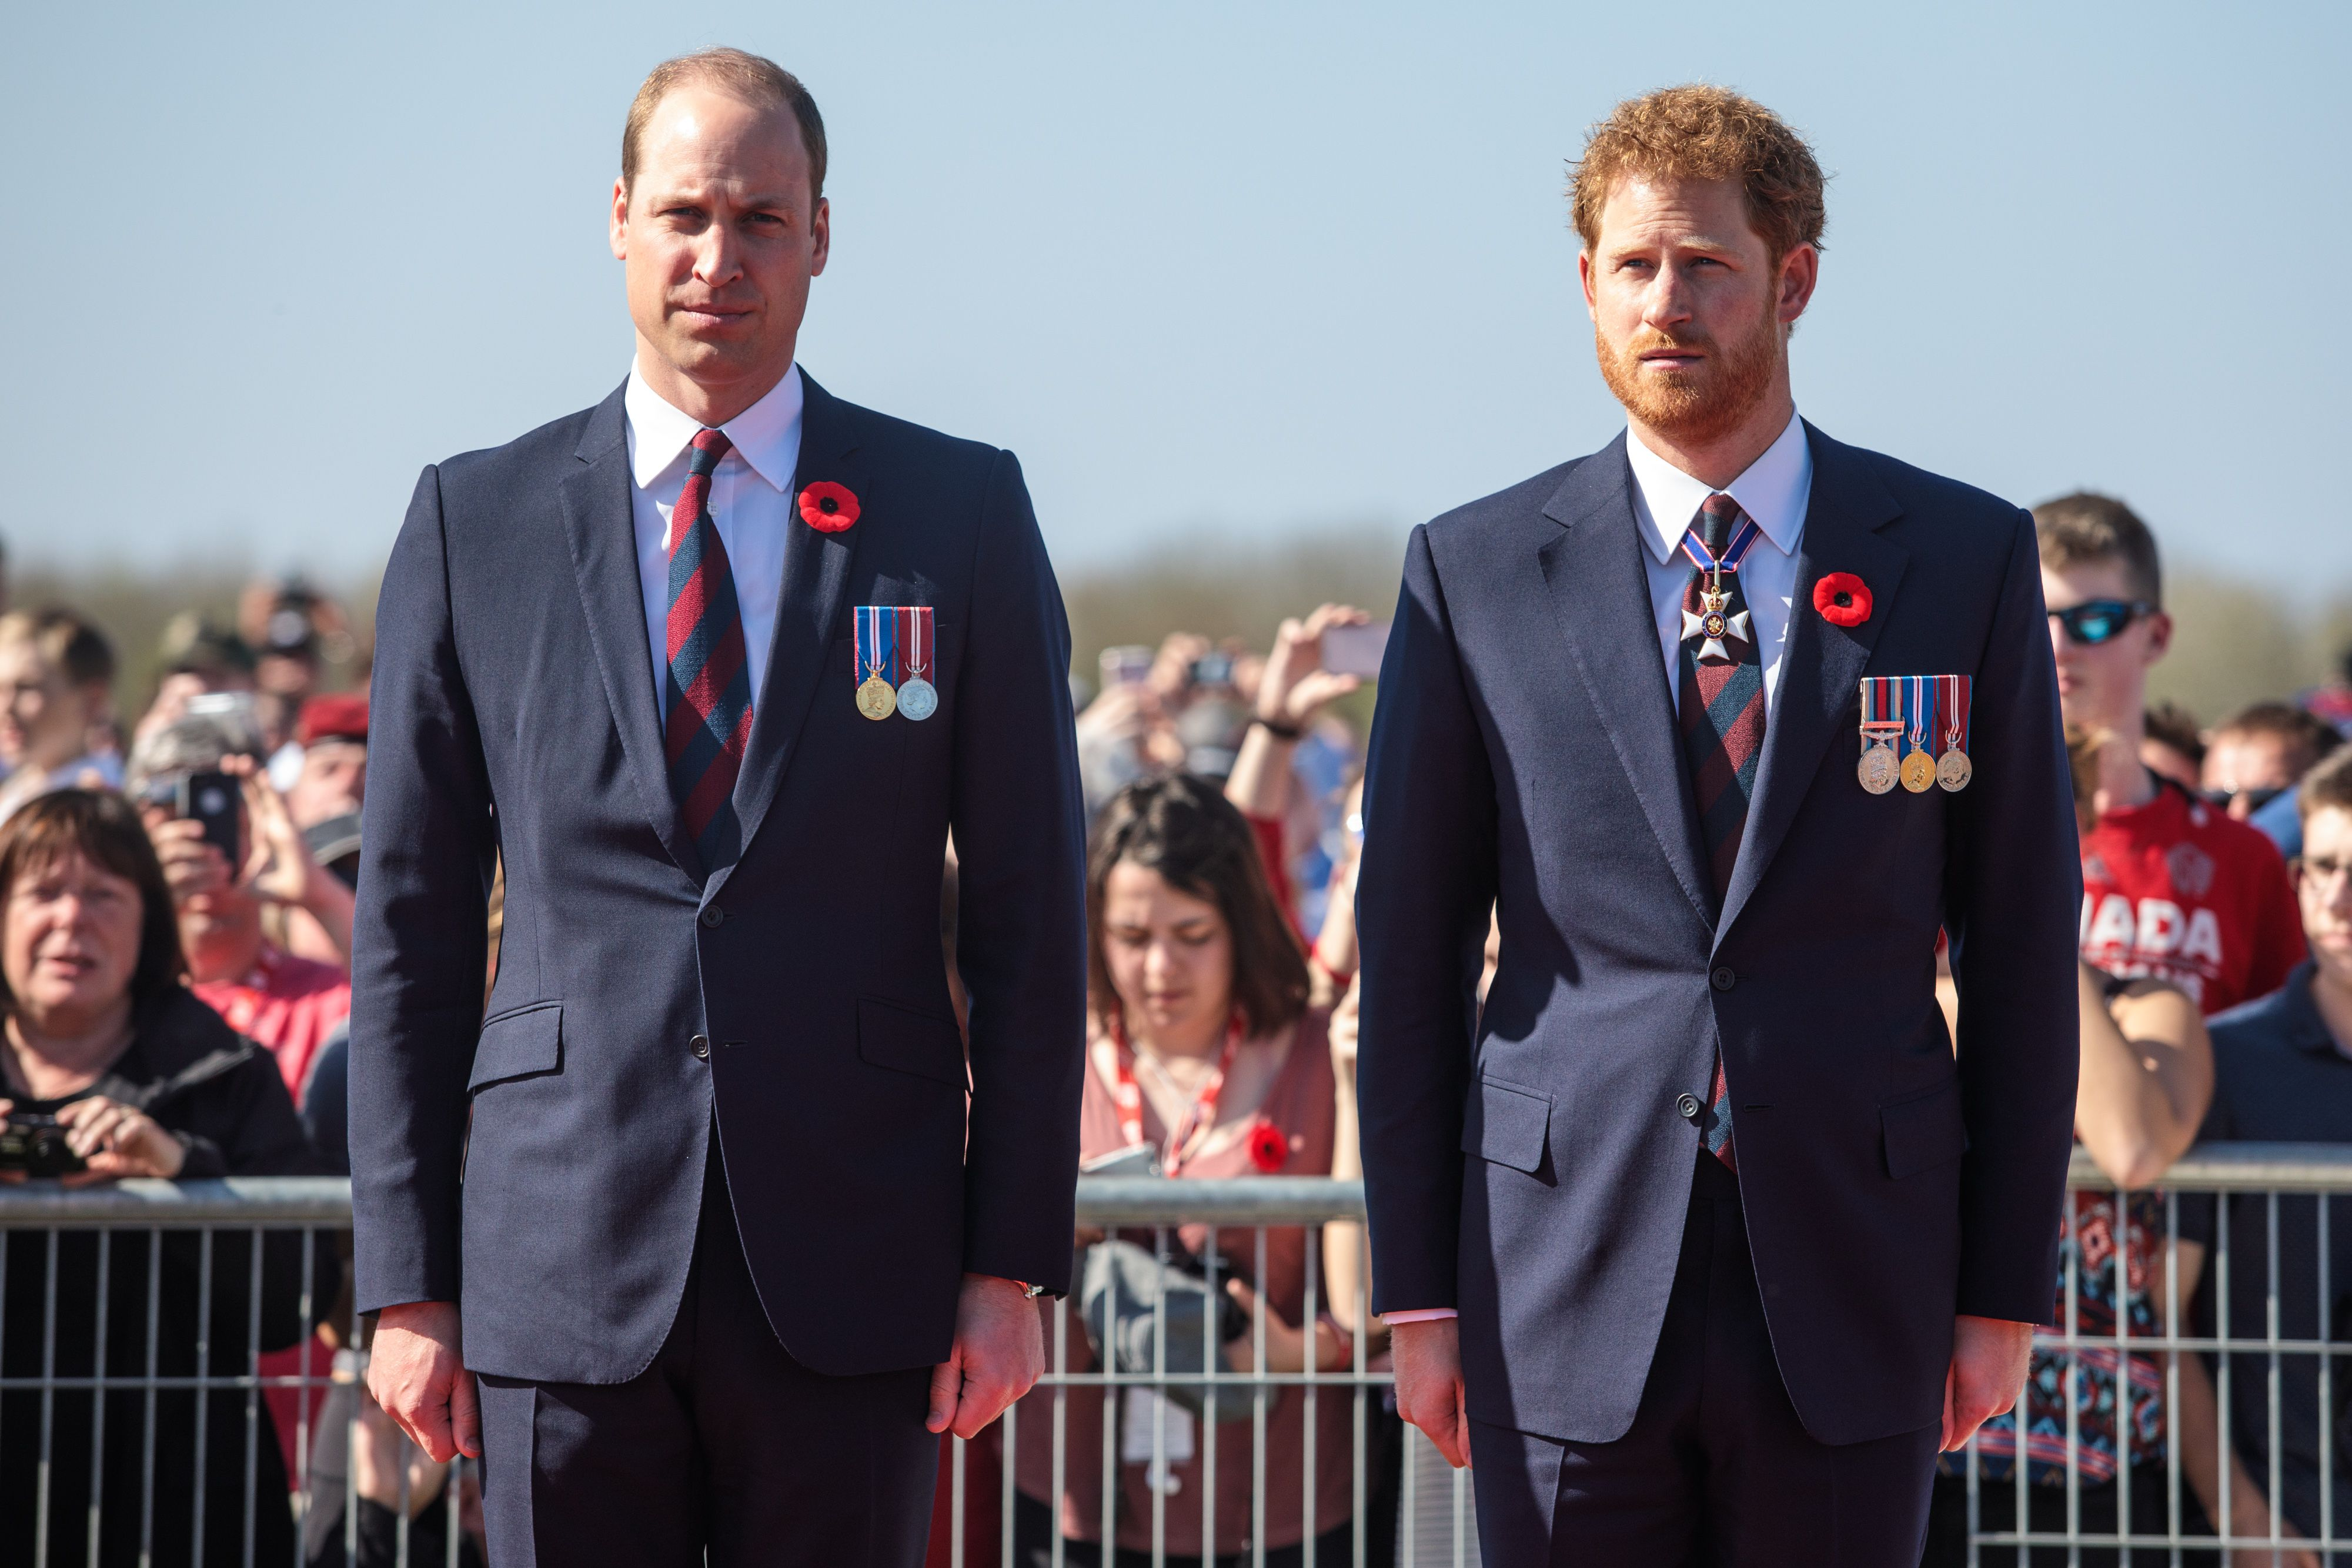 Prince William and Prince Harry at the Canadian National Vimy Memorial on April 9, 2017 in Vimy, France | Photo: Getty Images